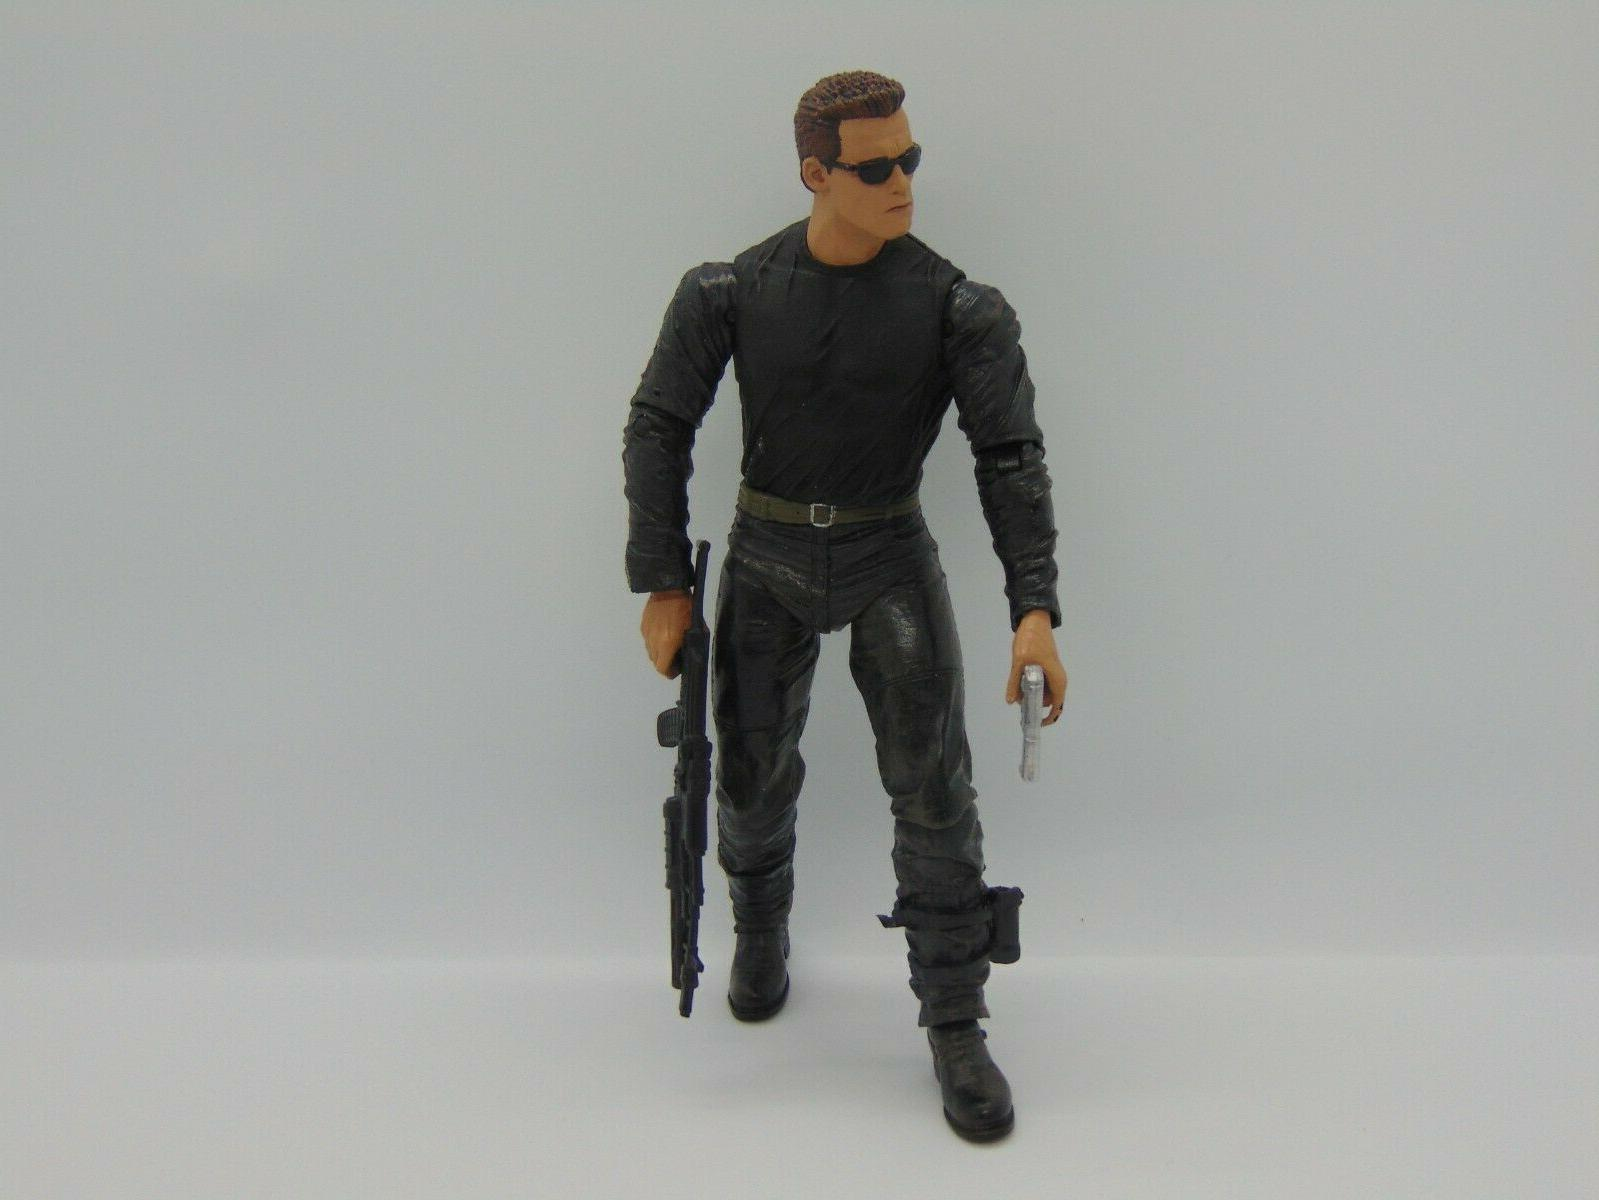 Custom Scale for 6 Inch Action Figures Leg Holster